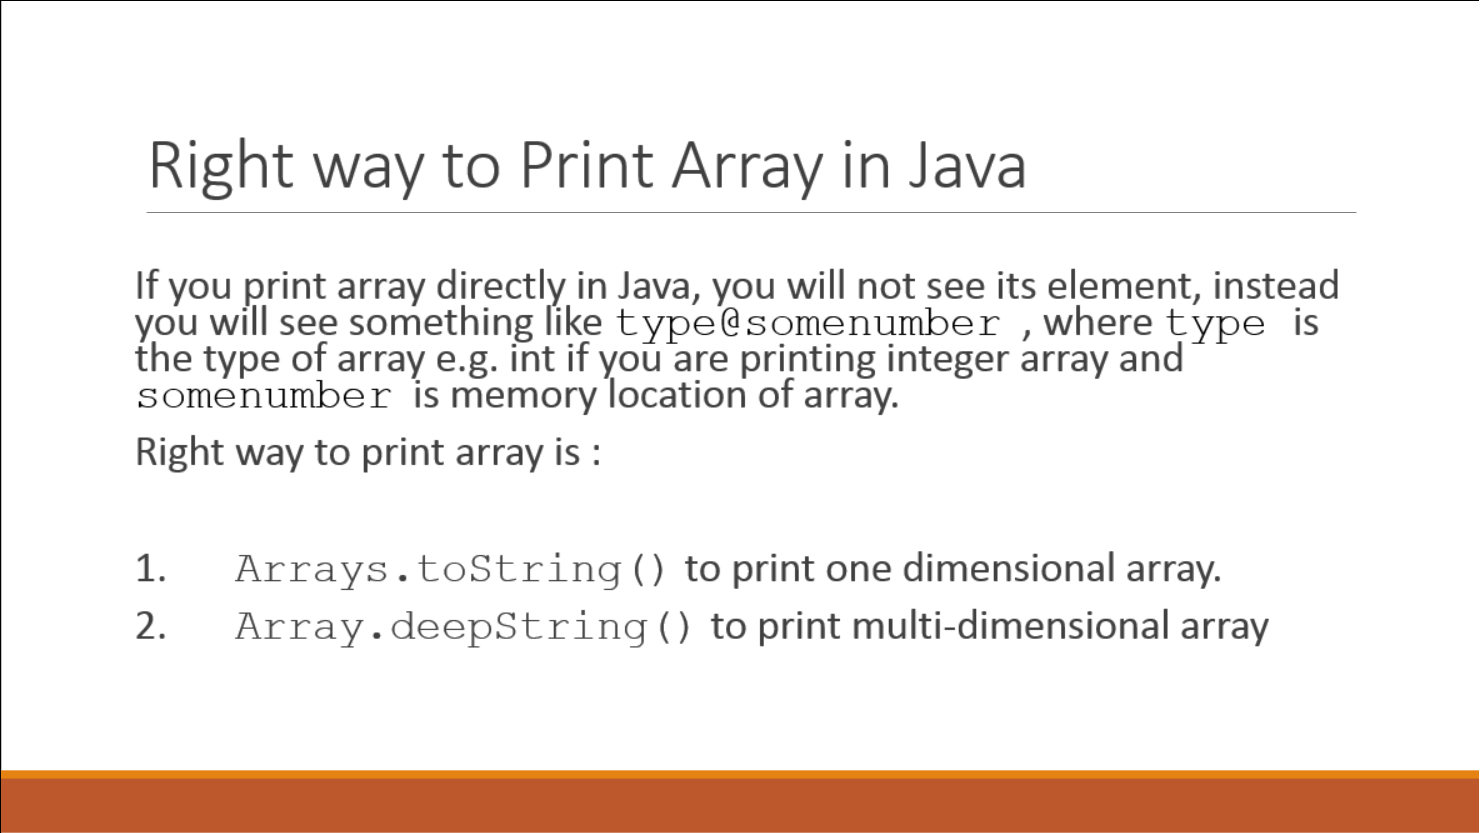 How to Print an Array in Java